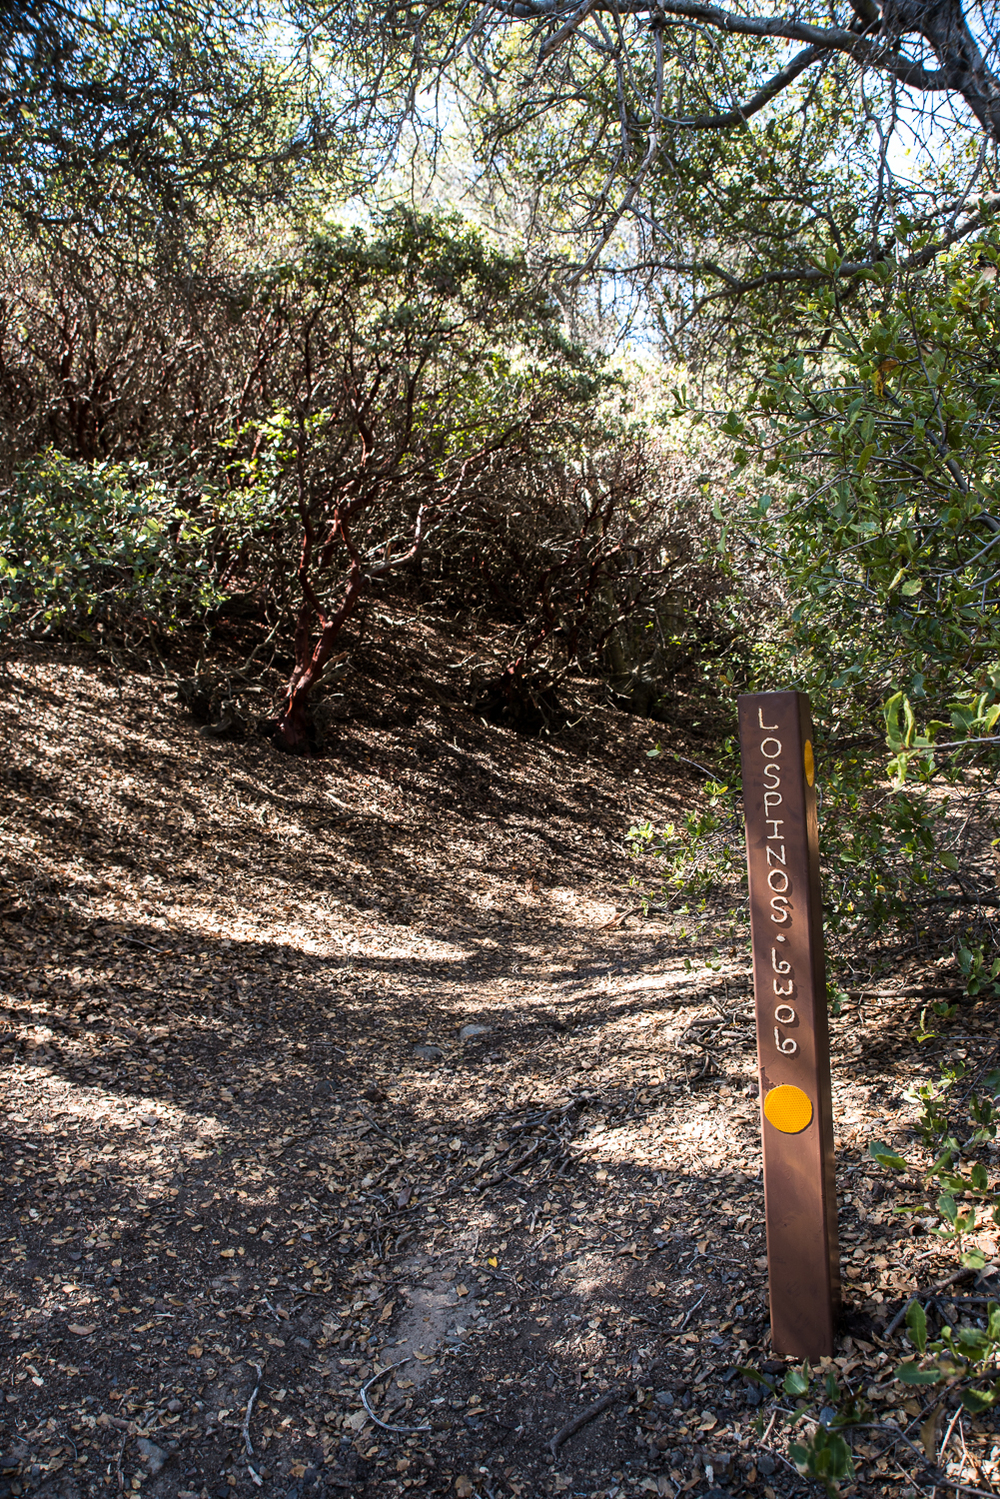 The trail marker after the blue fence